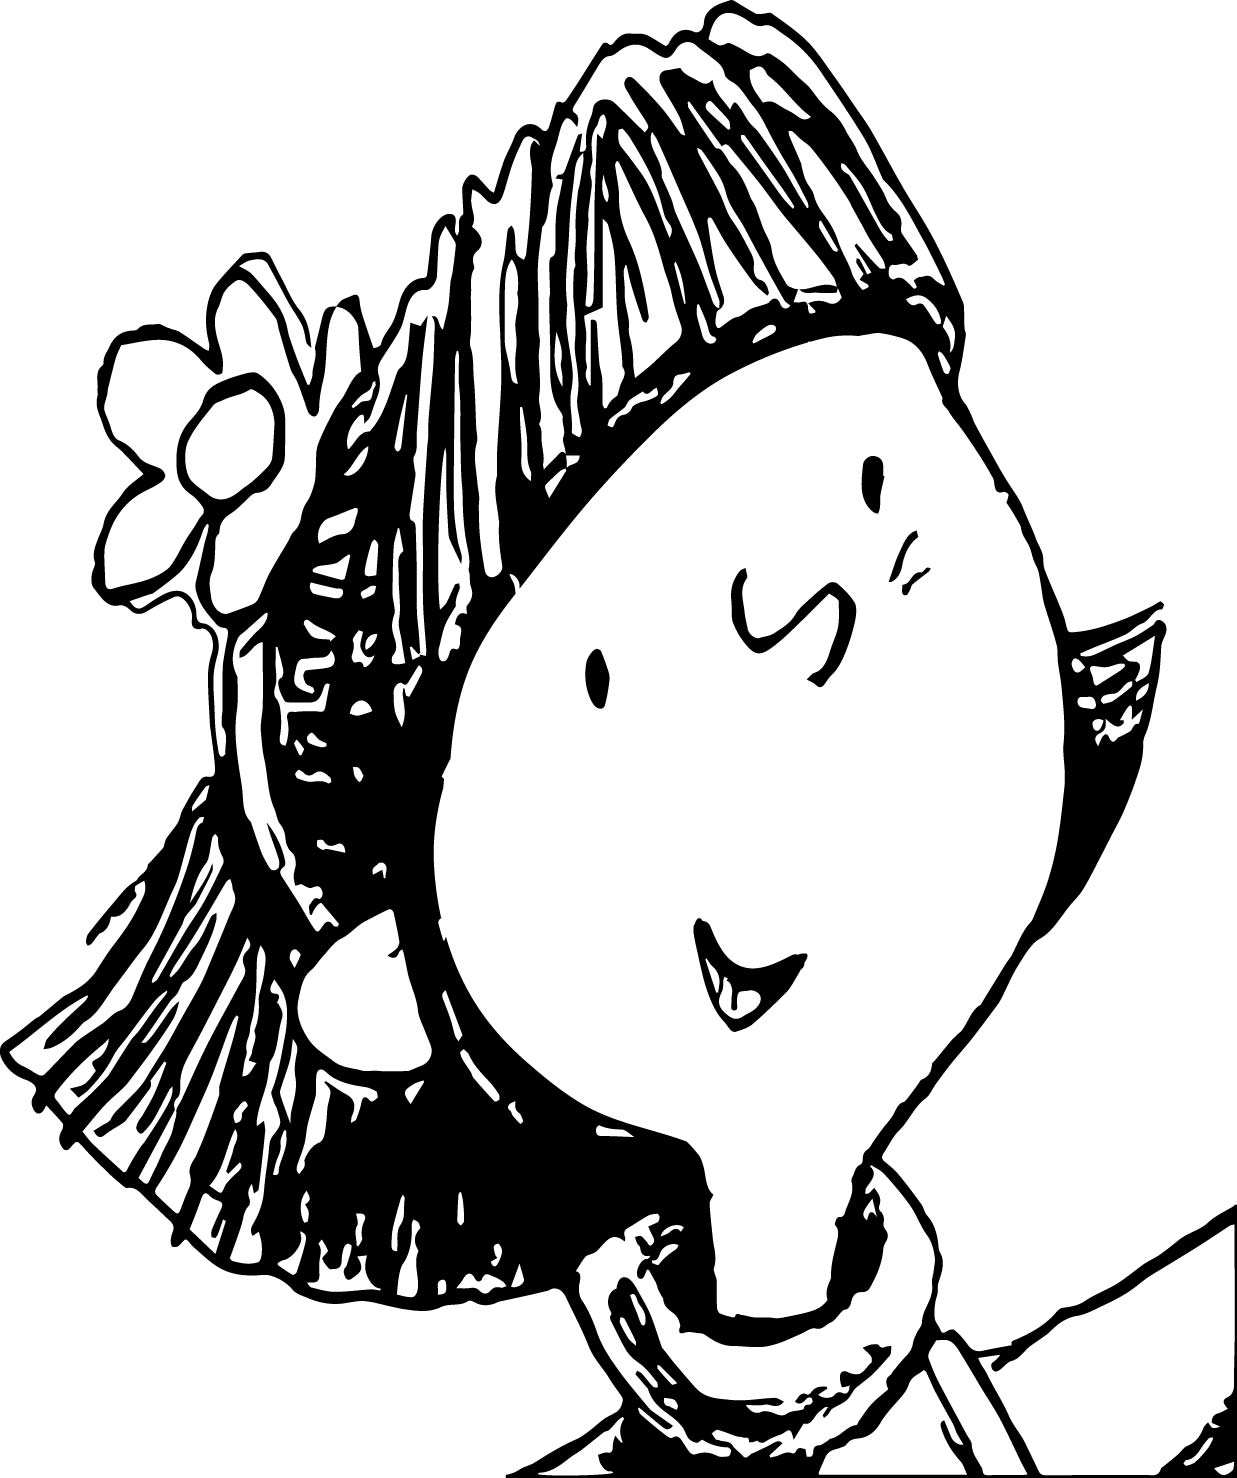 amelia bedelia coloring pages images for adults | Amelia Bedelia Kid Face Oloring Page | Wecoloringpage.com